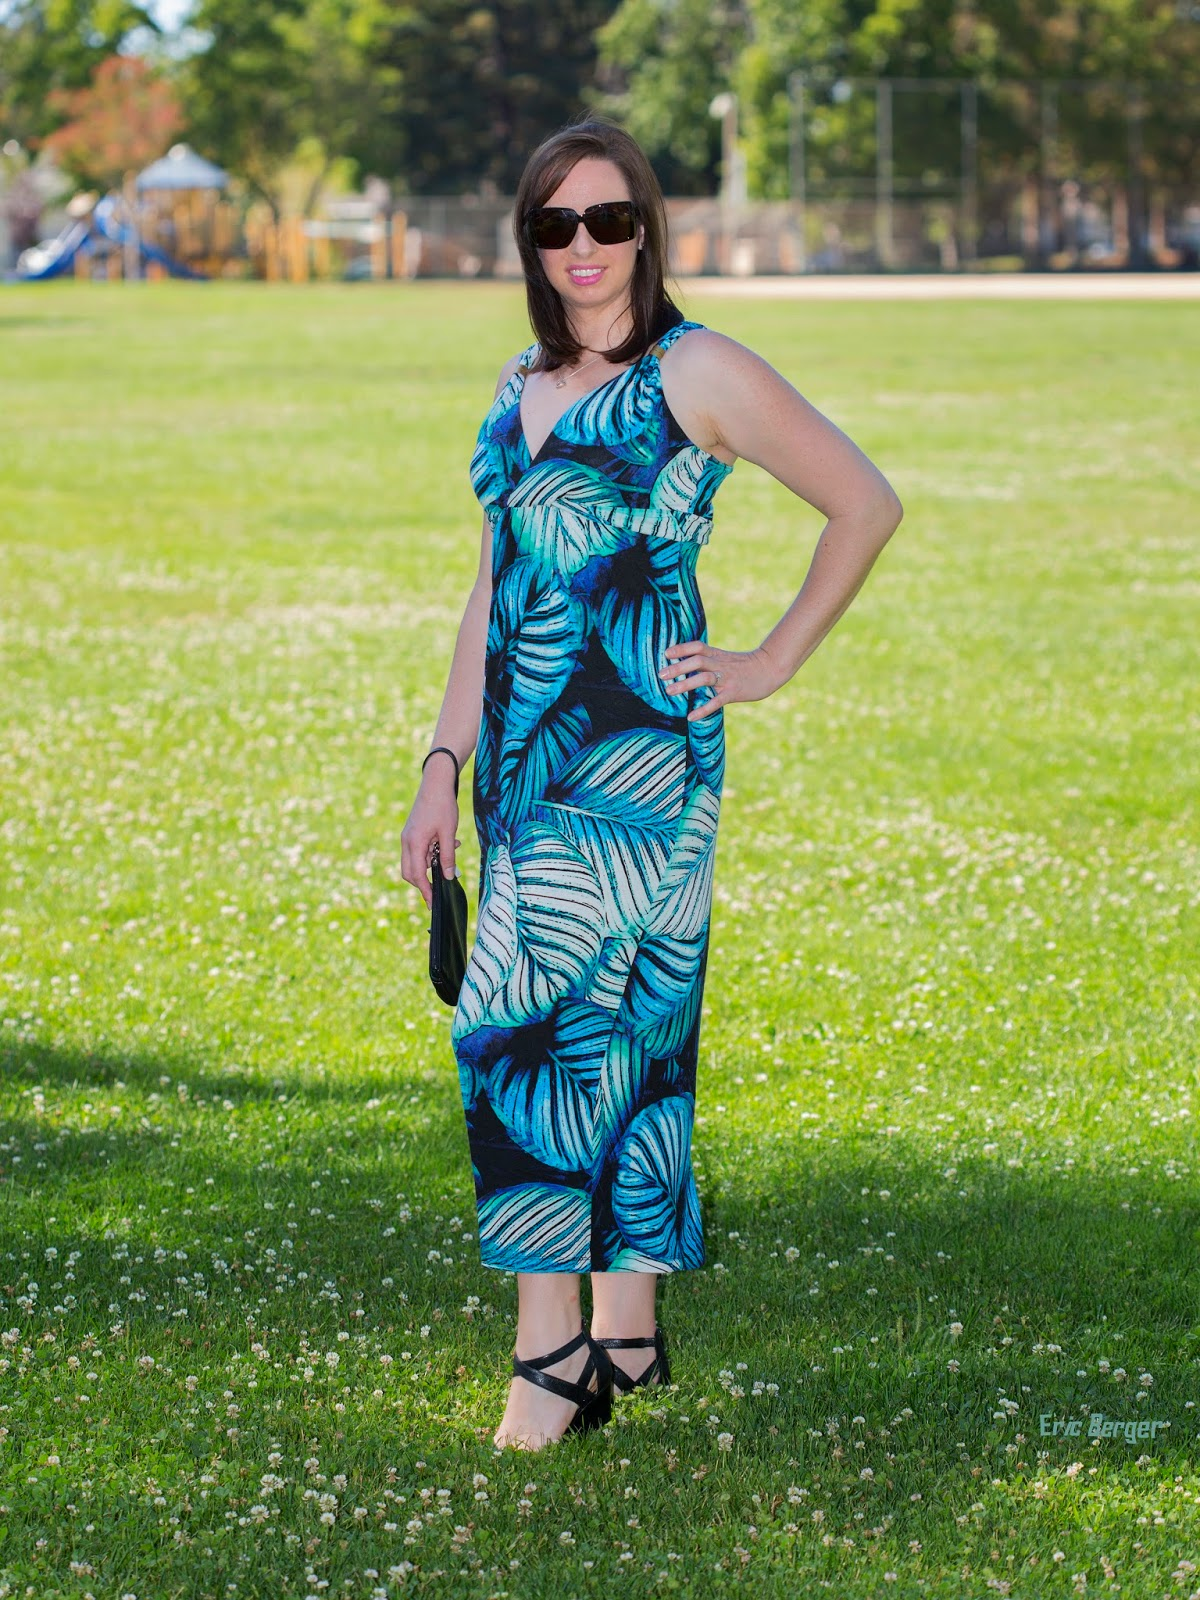 Blue Hawaiian island style maxi dress outfit